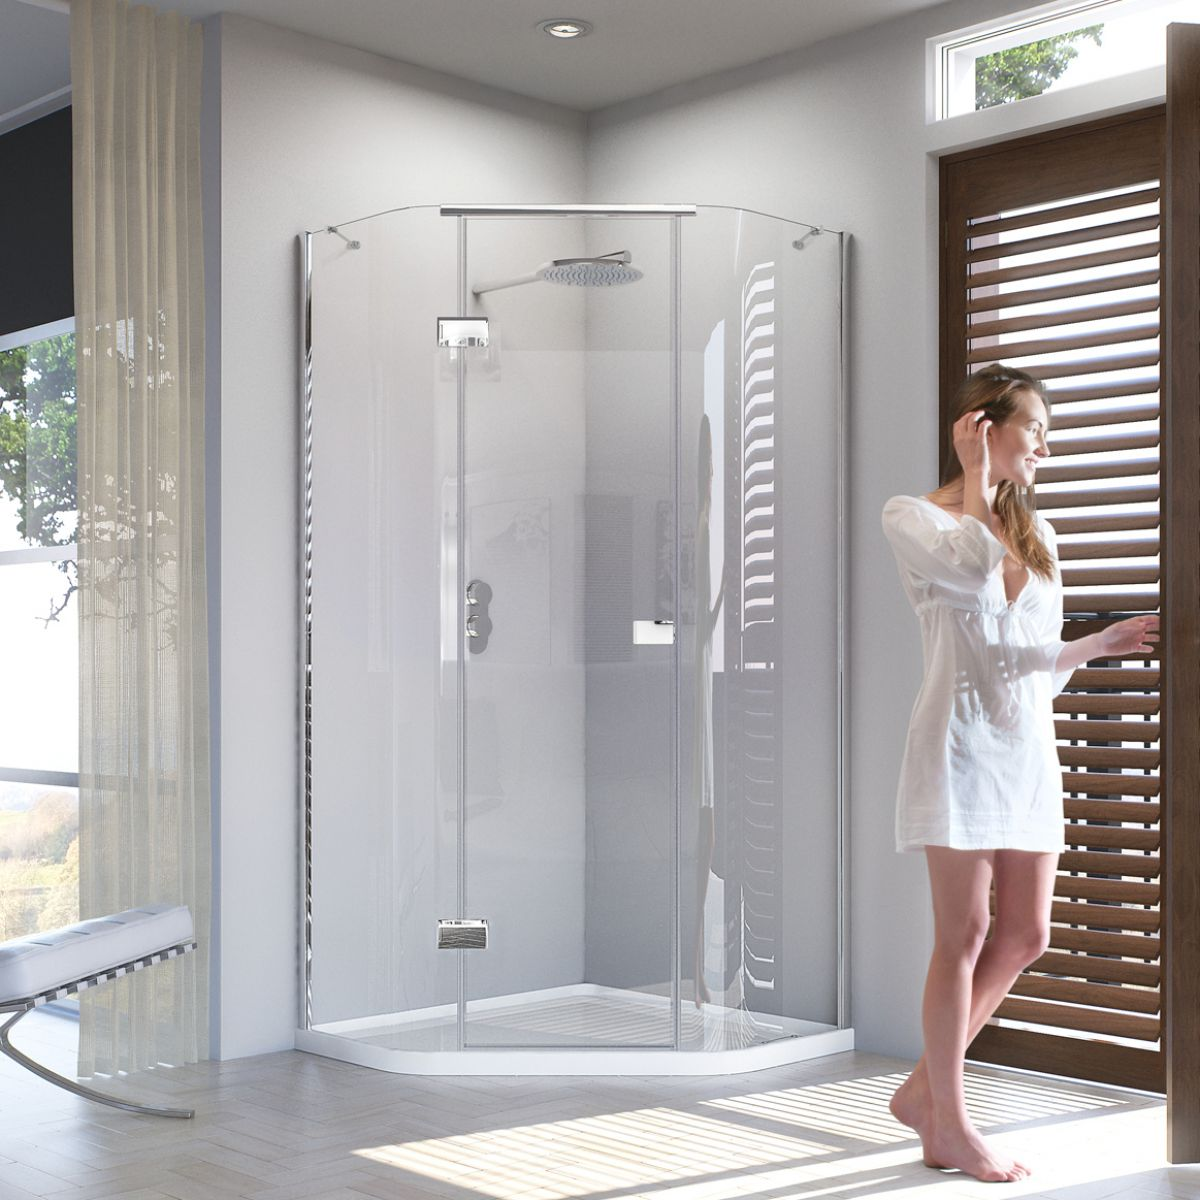 7 Best Shower Enclosure Kits Updated Jan 2019 Reviews